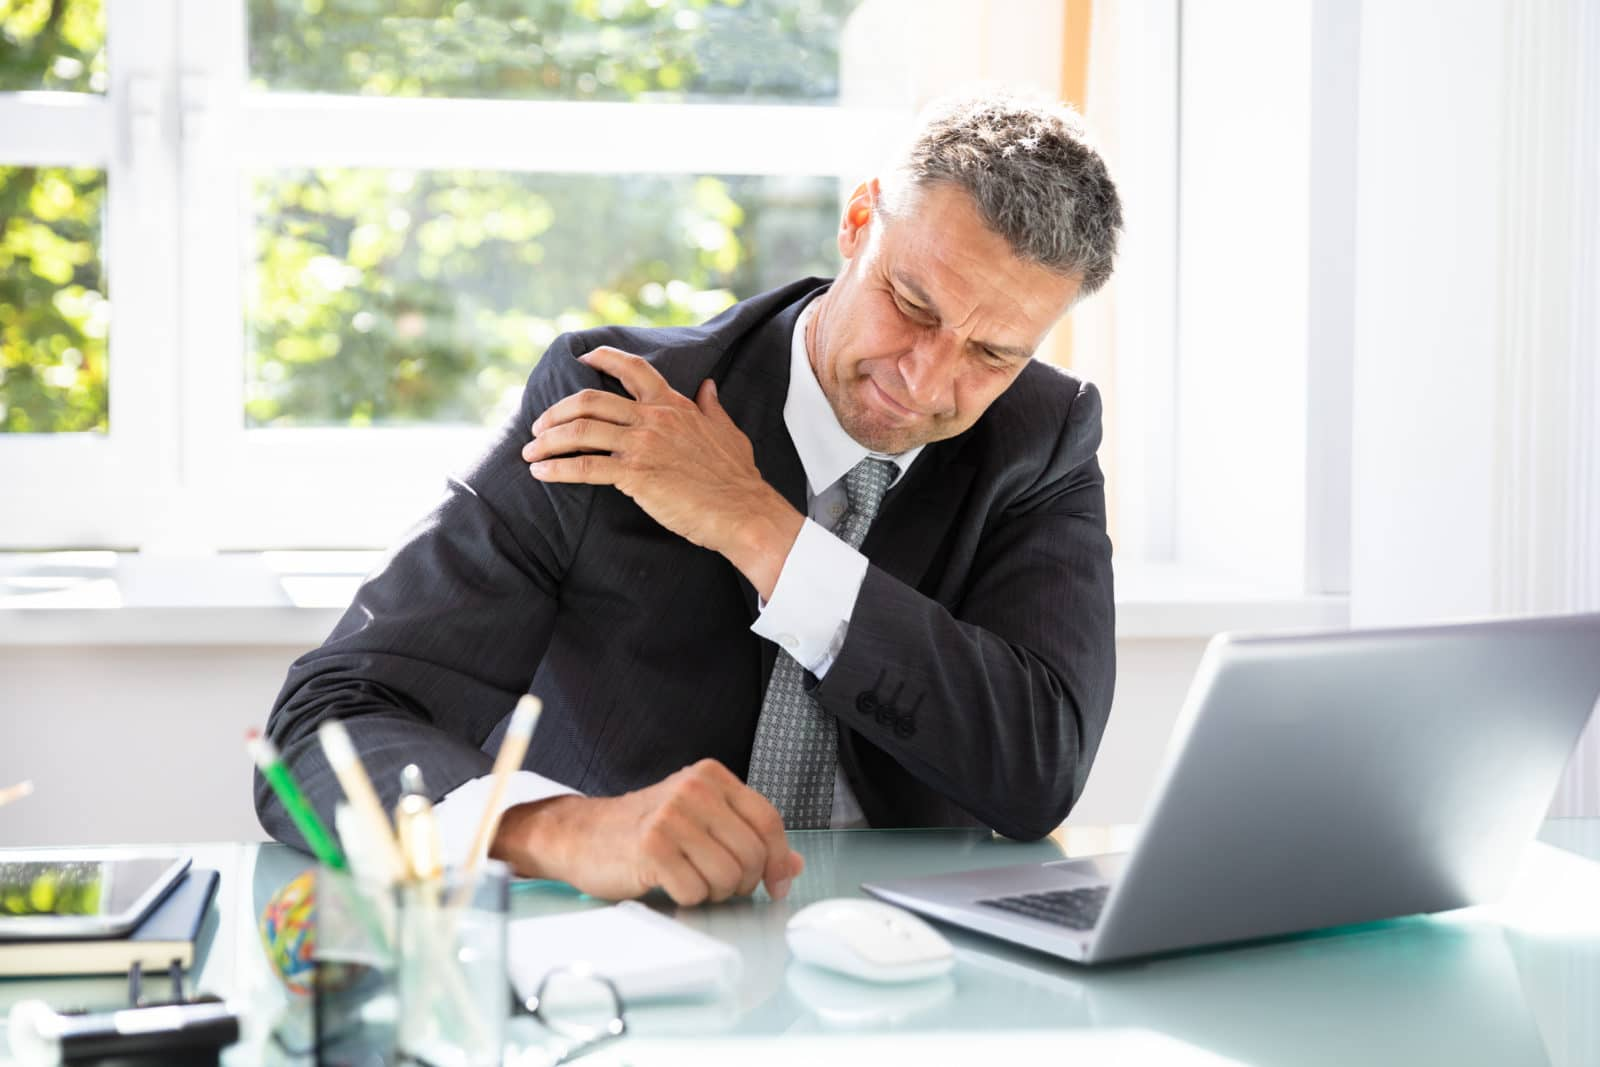 8 Simple Ways to Relieve Work-Related Shoulder Pain